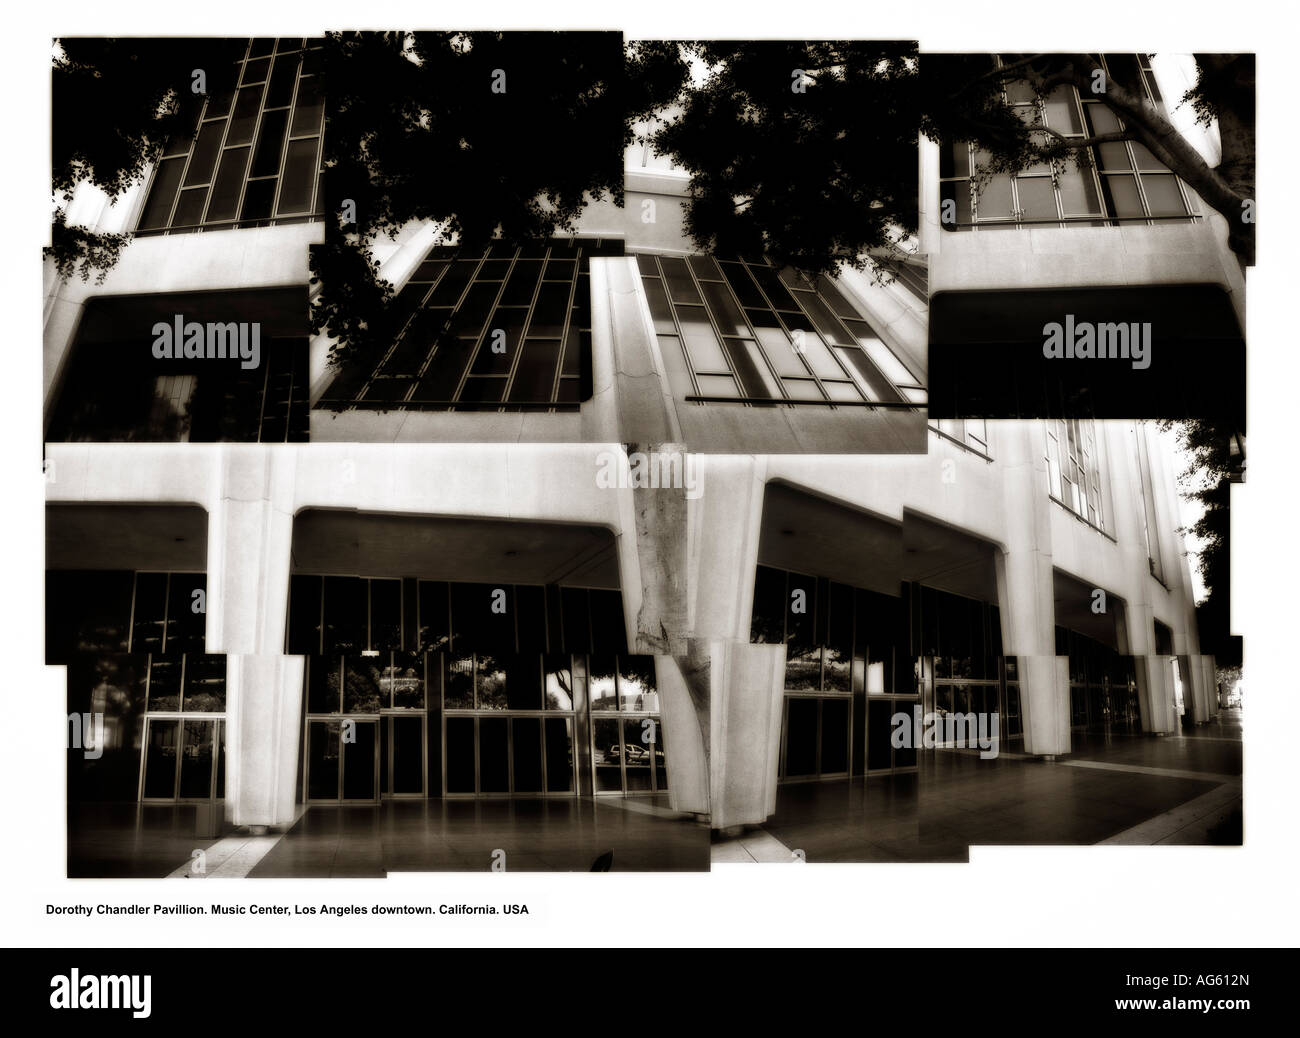 Collage image of Dorothy Chandler Pavillion. Los Angeles Music Center. Los Angeles downtown. California. USA - Stock Image